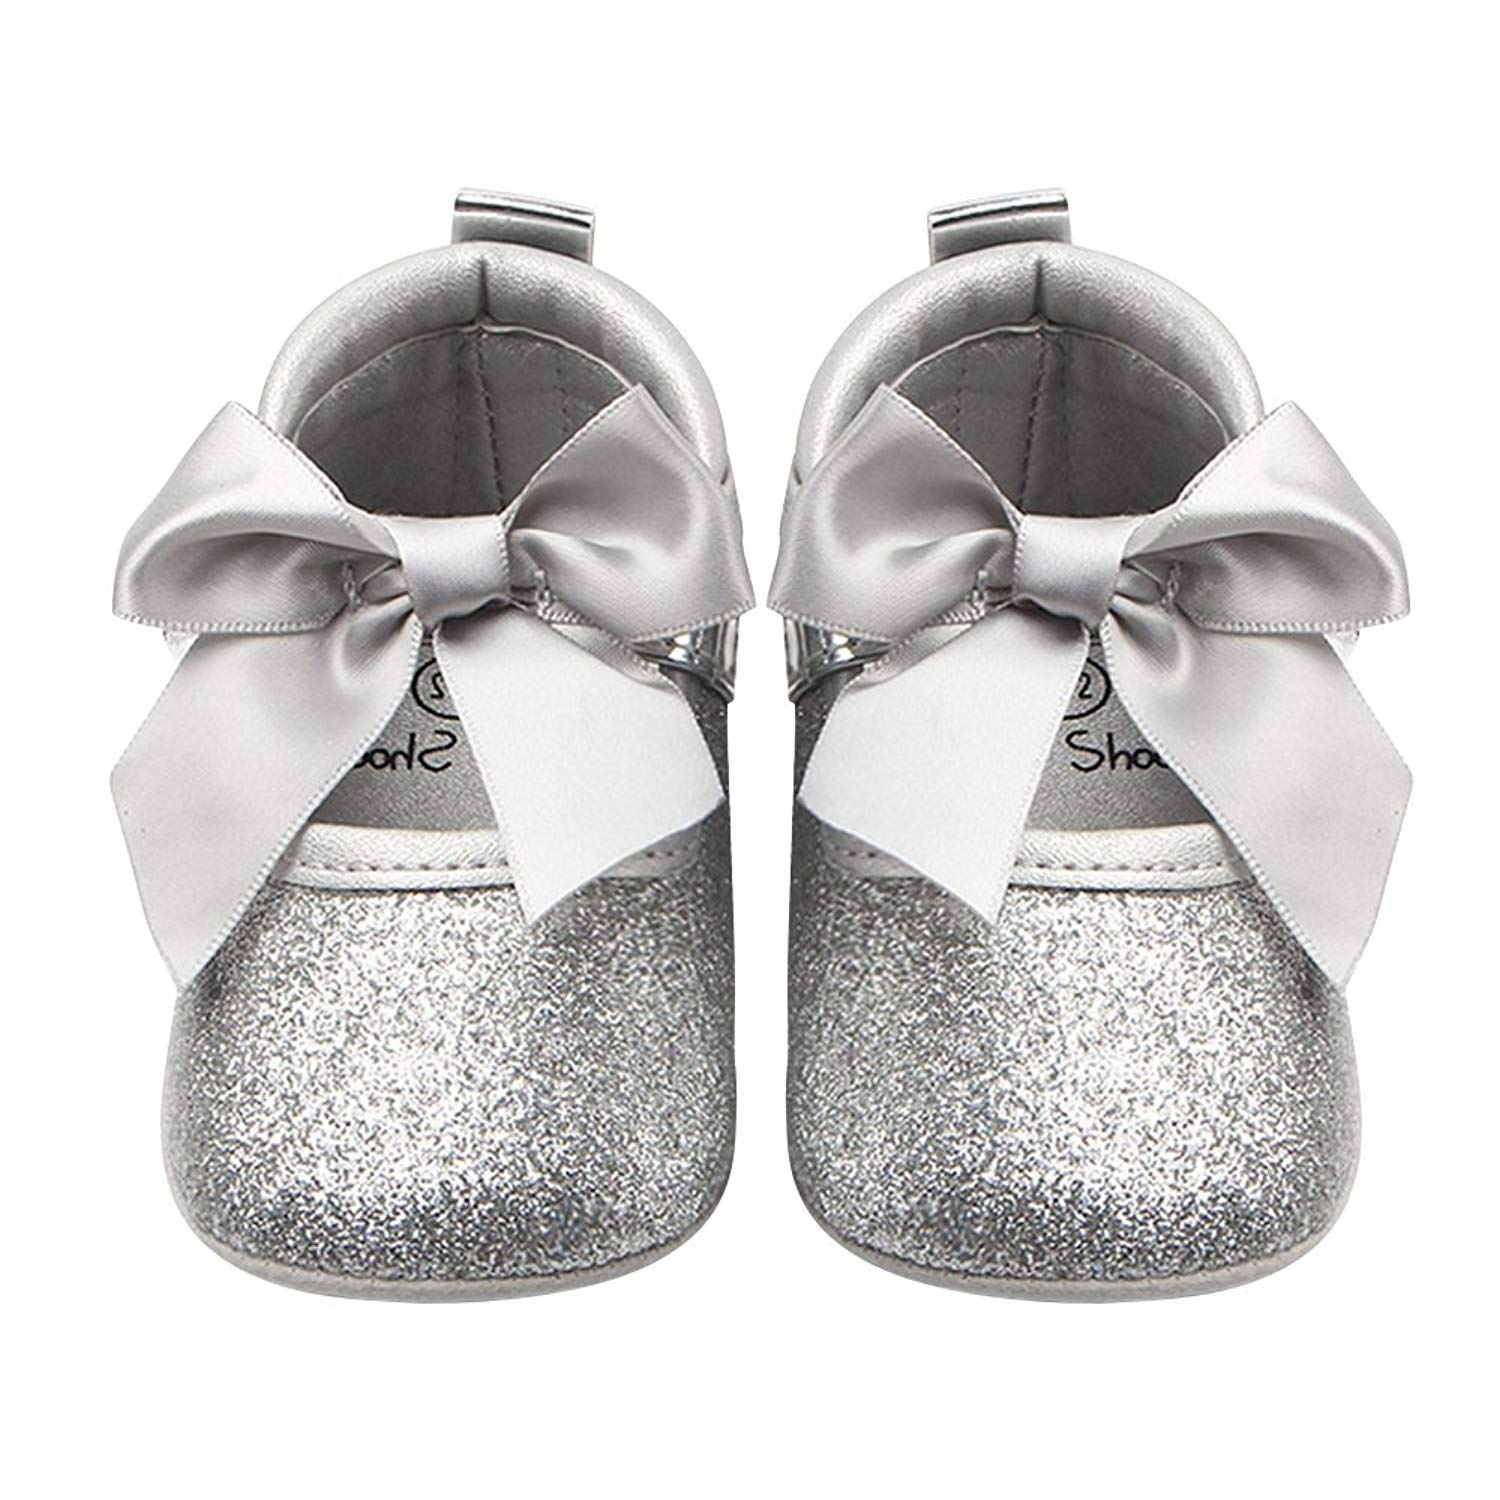 eb3610832f876 Cheap Silver Baby Shoes, find Silver Baby Shoes deals on line at ...